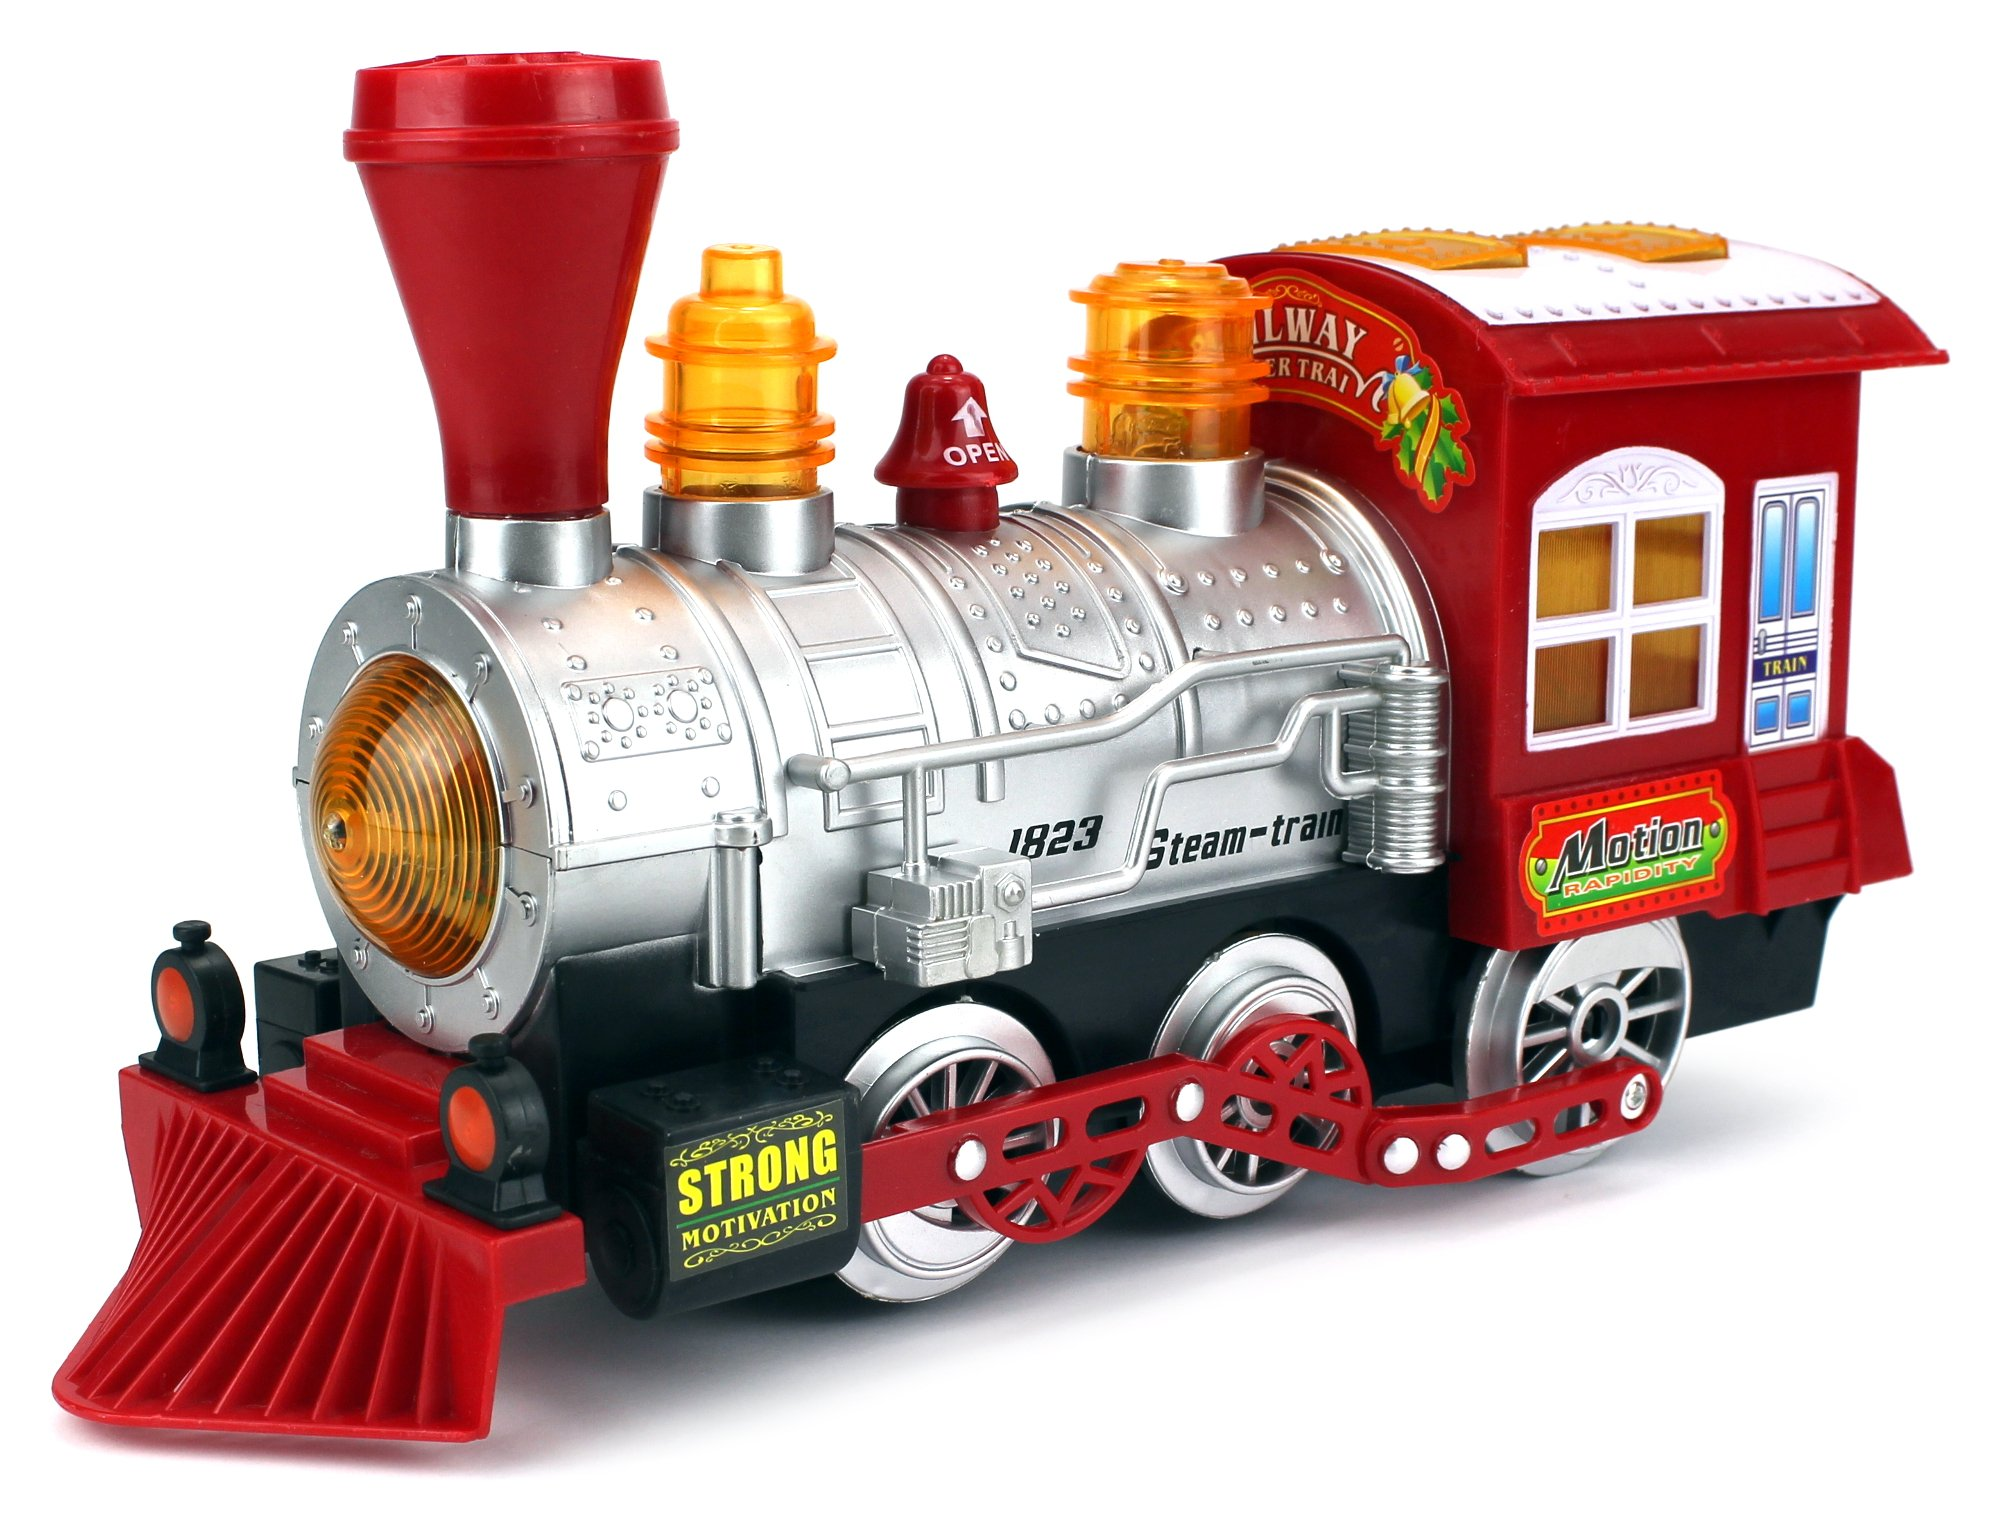 Velocity Locomotive Blowing Battery Operated